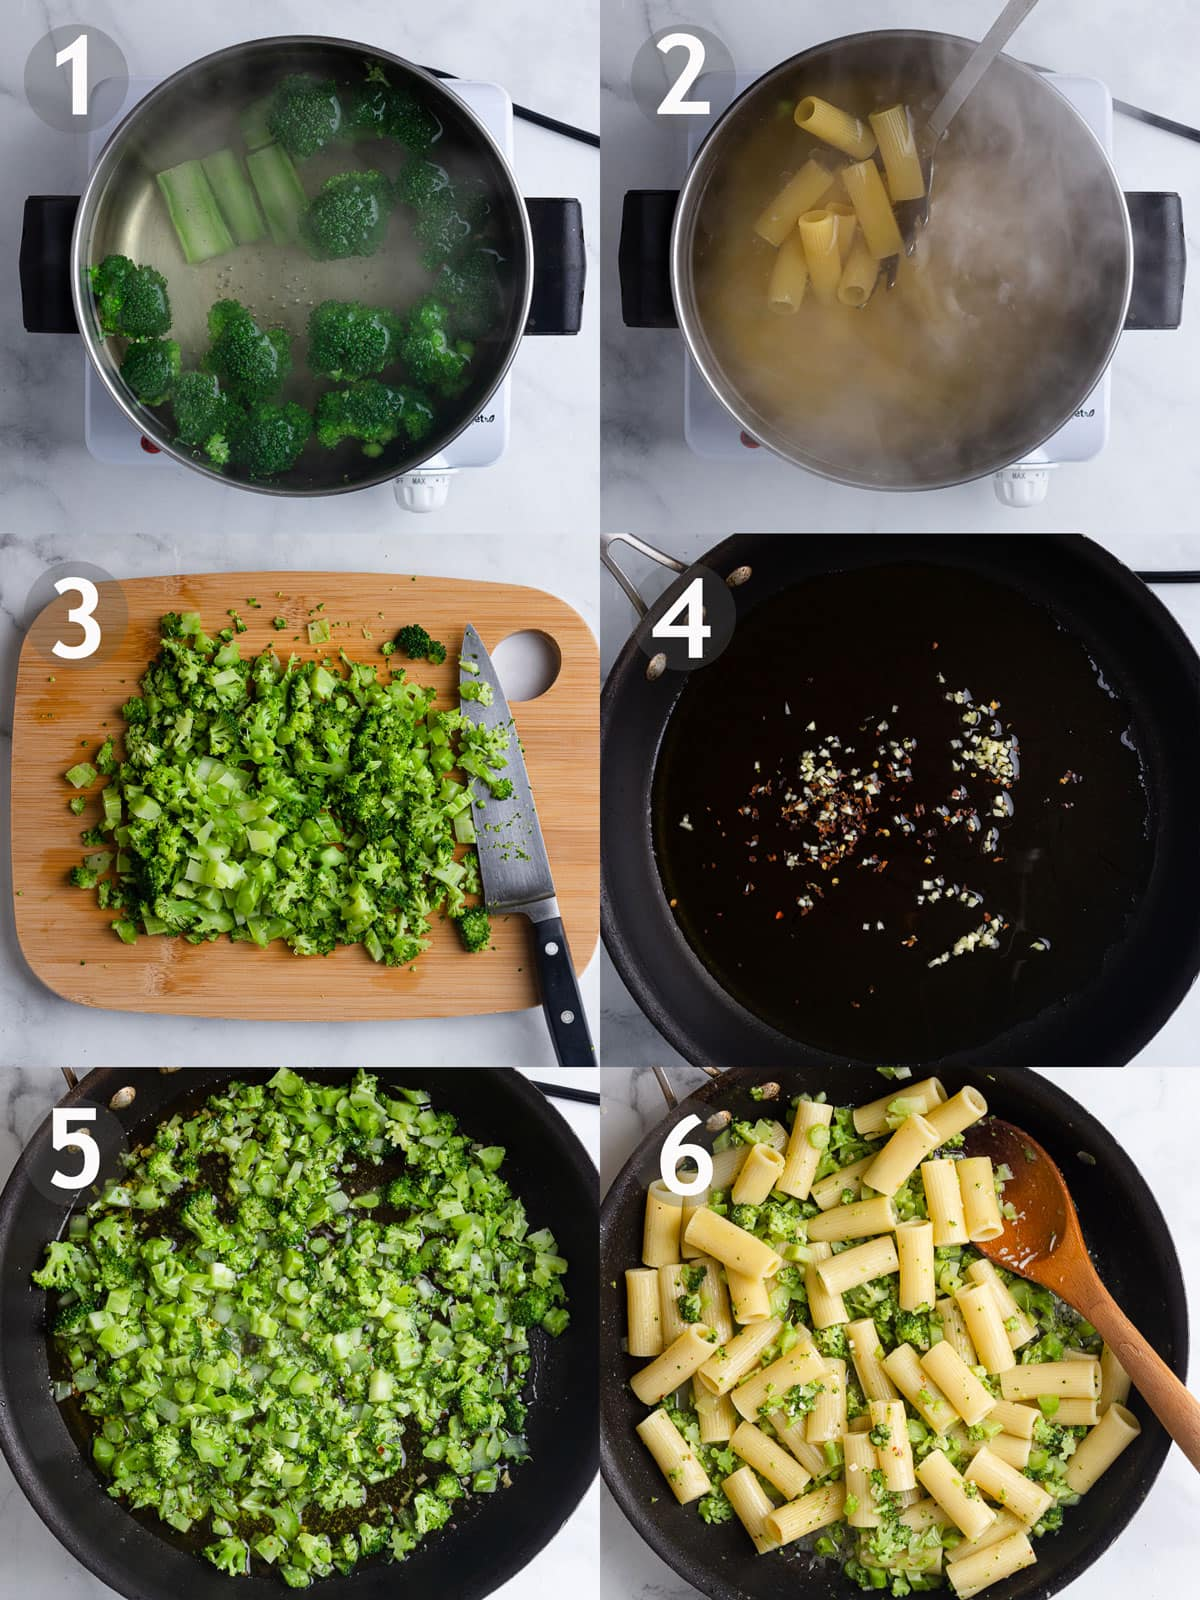 Steps to cook pasta including boiling and chopping broccoli, boiling rigatoni, sautéing onion and red pepper, and adding broccoli, pasta and grated cheese.